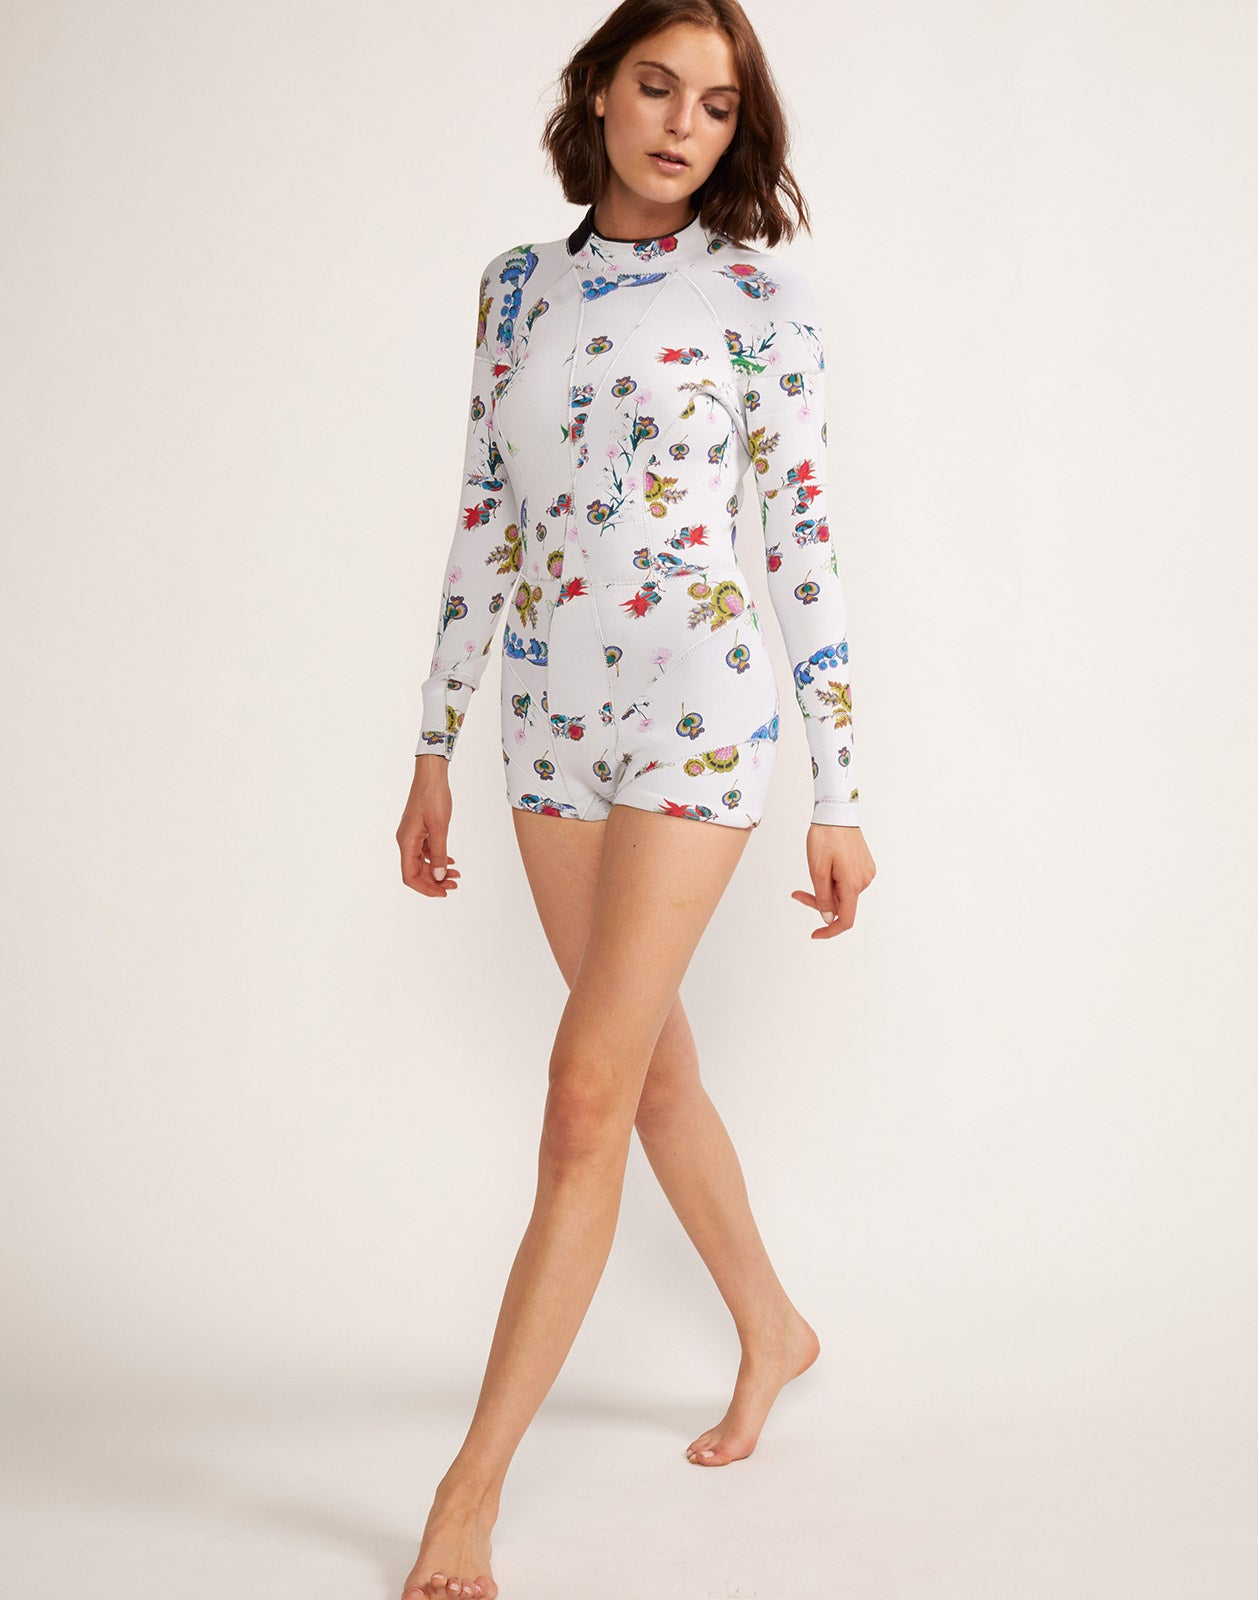 Full view of the Garden Floral High Tide Wetsuit